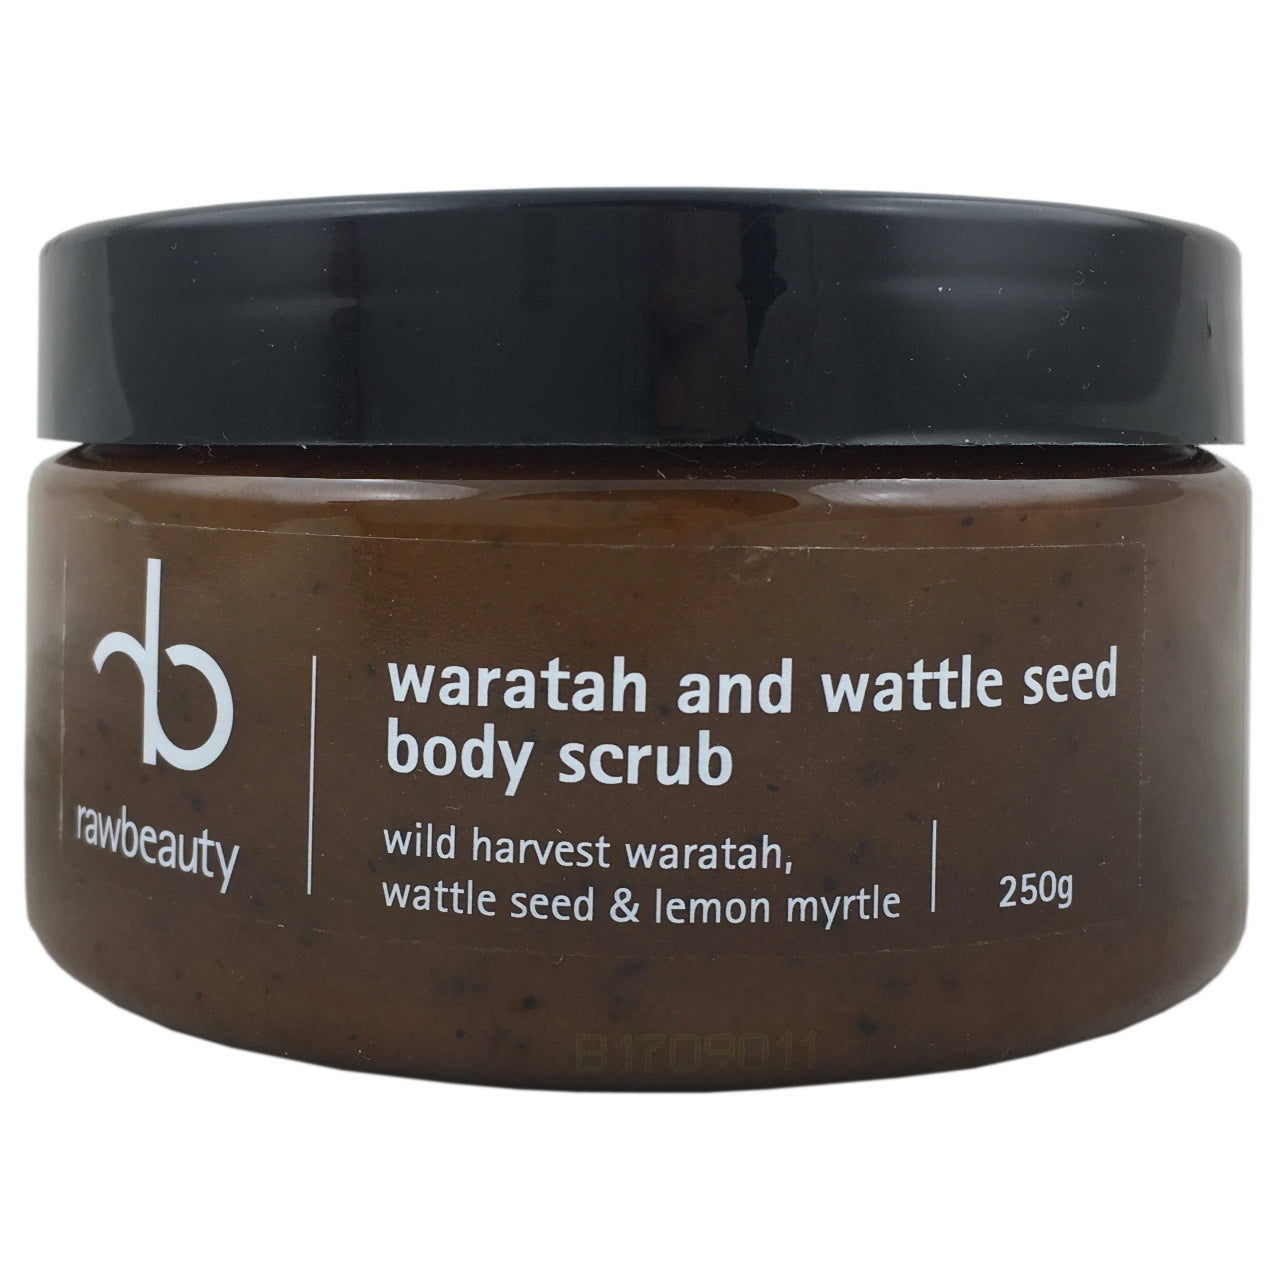 Raw Beauty Body Scrub - Waratah and Wattle Seed